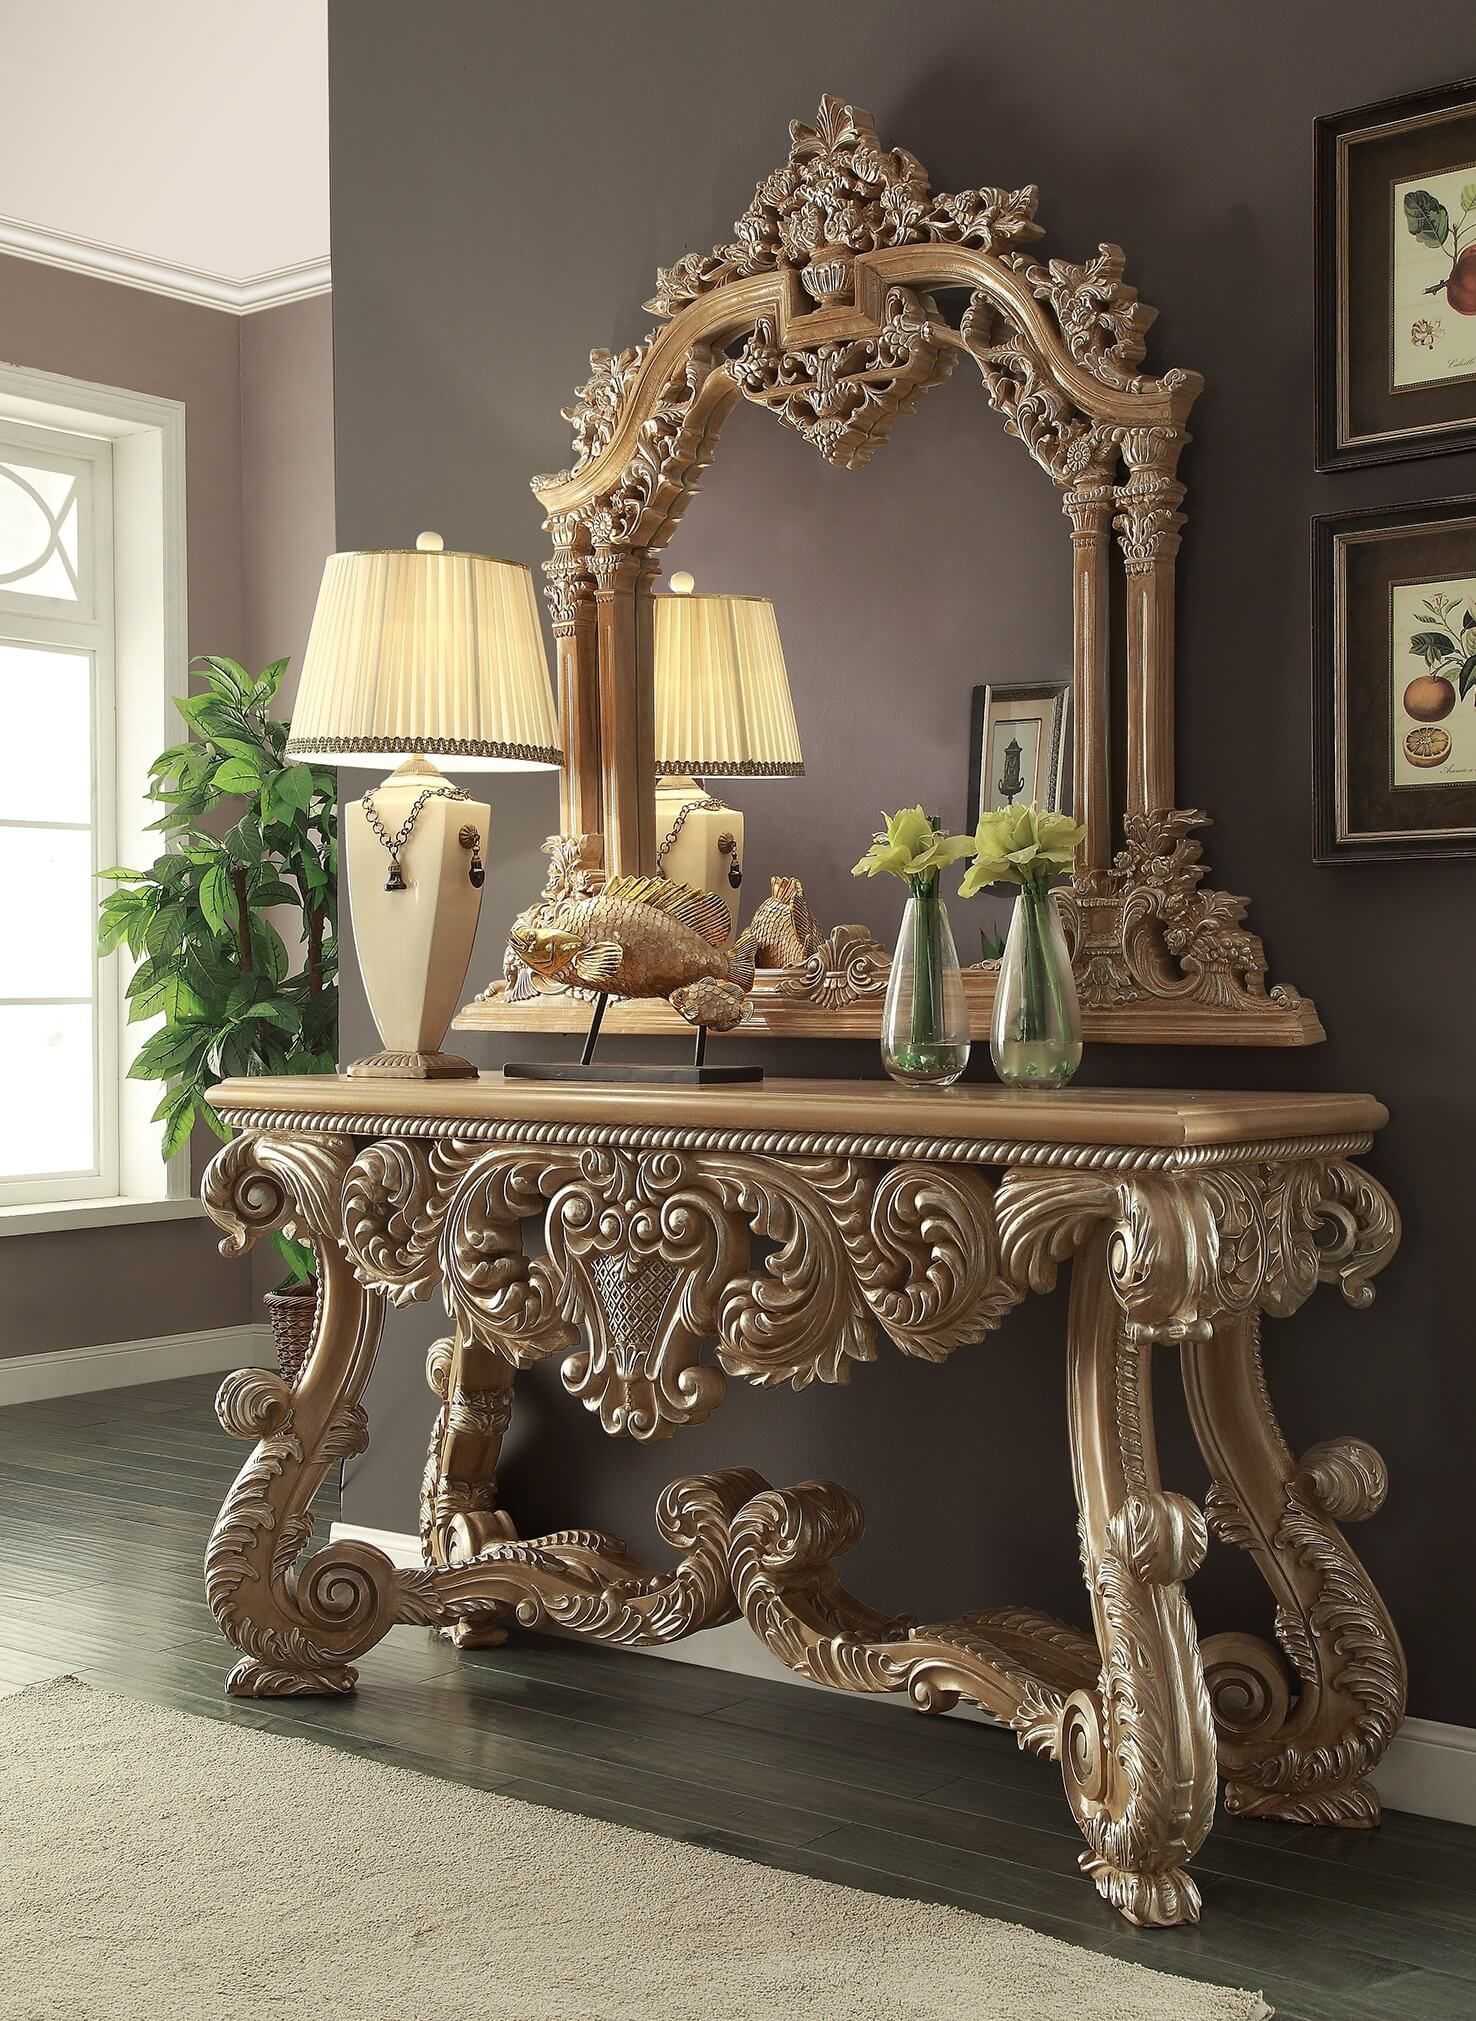 Homey design hd 7012 royal kingdom console table mirrorg 1476 homey design hd 7012 royal kingdom console table geotapseo Images